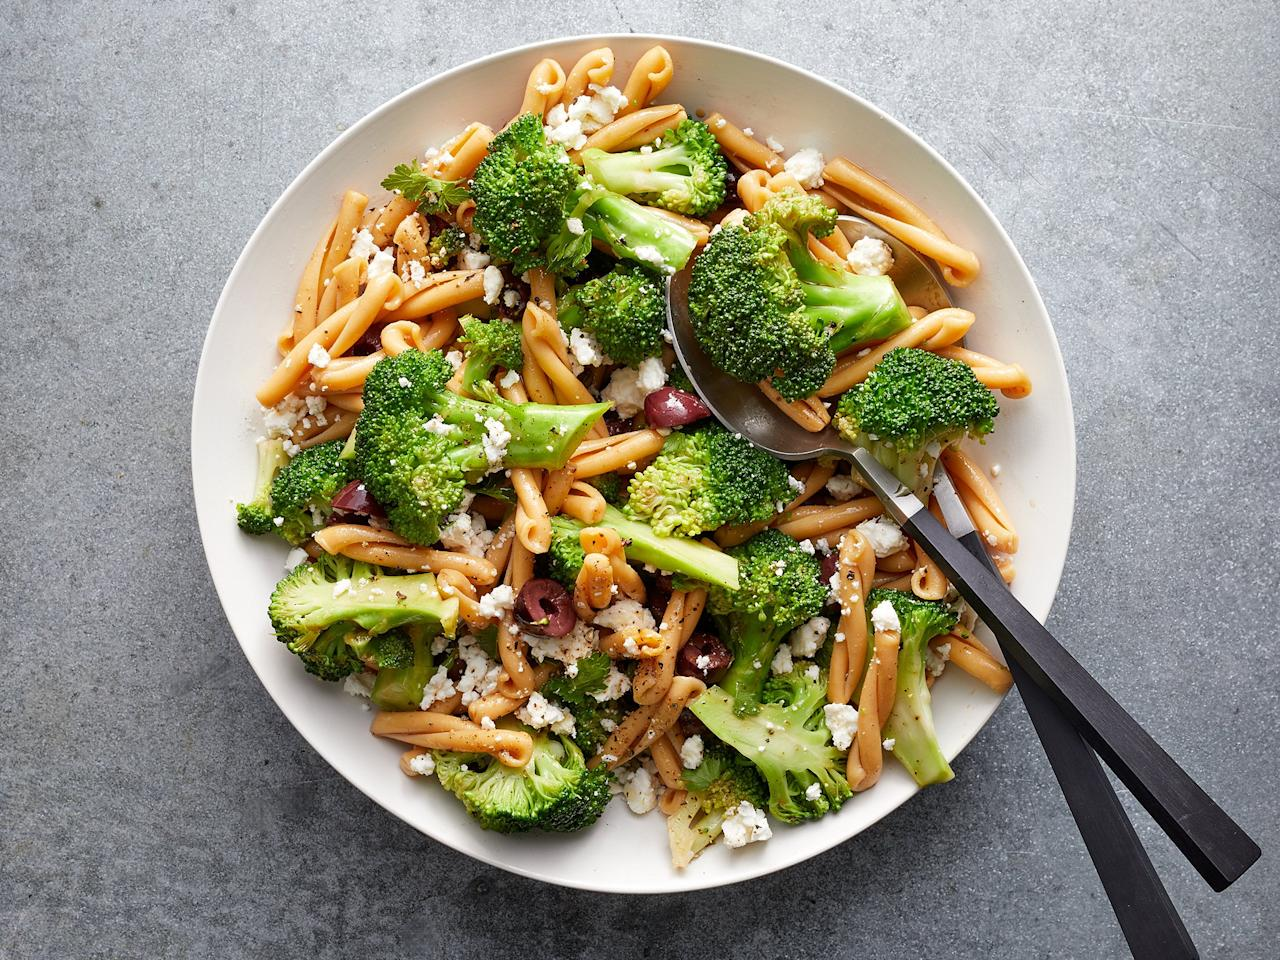 """<p>This healthy pasta salad is quick and easy to put together for picnics, potlucks, or to dole out throughout the week for lunch. Feel free to add more herbs and/or toss in others like oregano or dill for extra flavor.</p> <p> <a href=""""https://www.cookinglight.com/recipes/broccoli-feta-pasta-salad"""">View Recipe: Broccoli-Feta Pasta Salad</a></p>"""